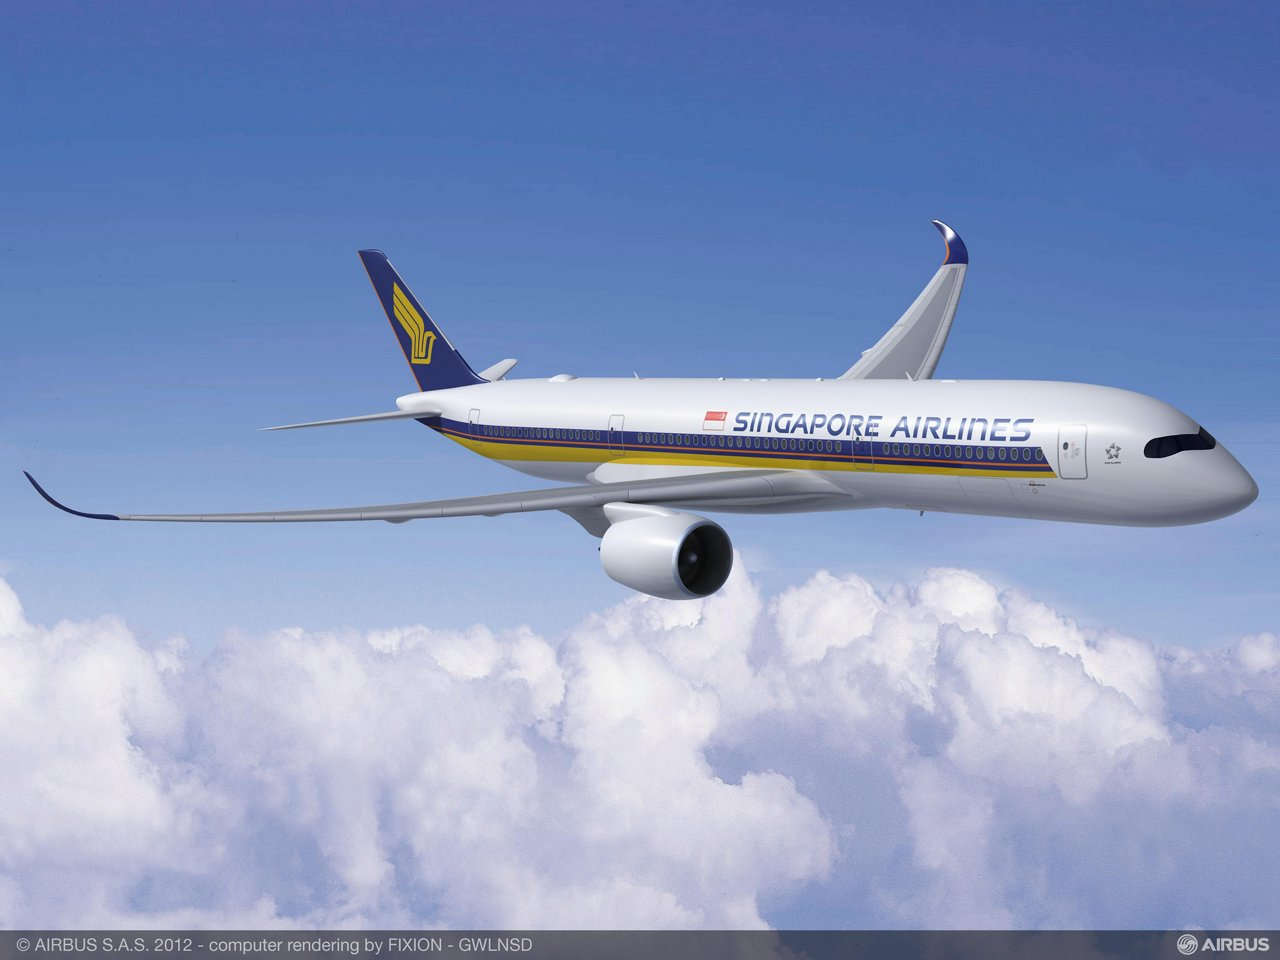 Singapore Airlines will order 20 additional A350 XWB jetliners from Airbus, along with five more double-deck A380s – with these aircraft to be operated on the carrier's long-range and regional services